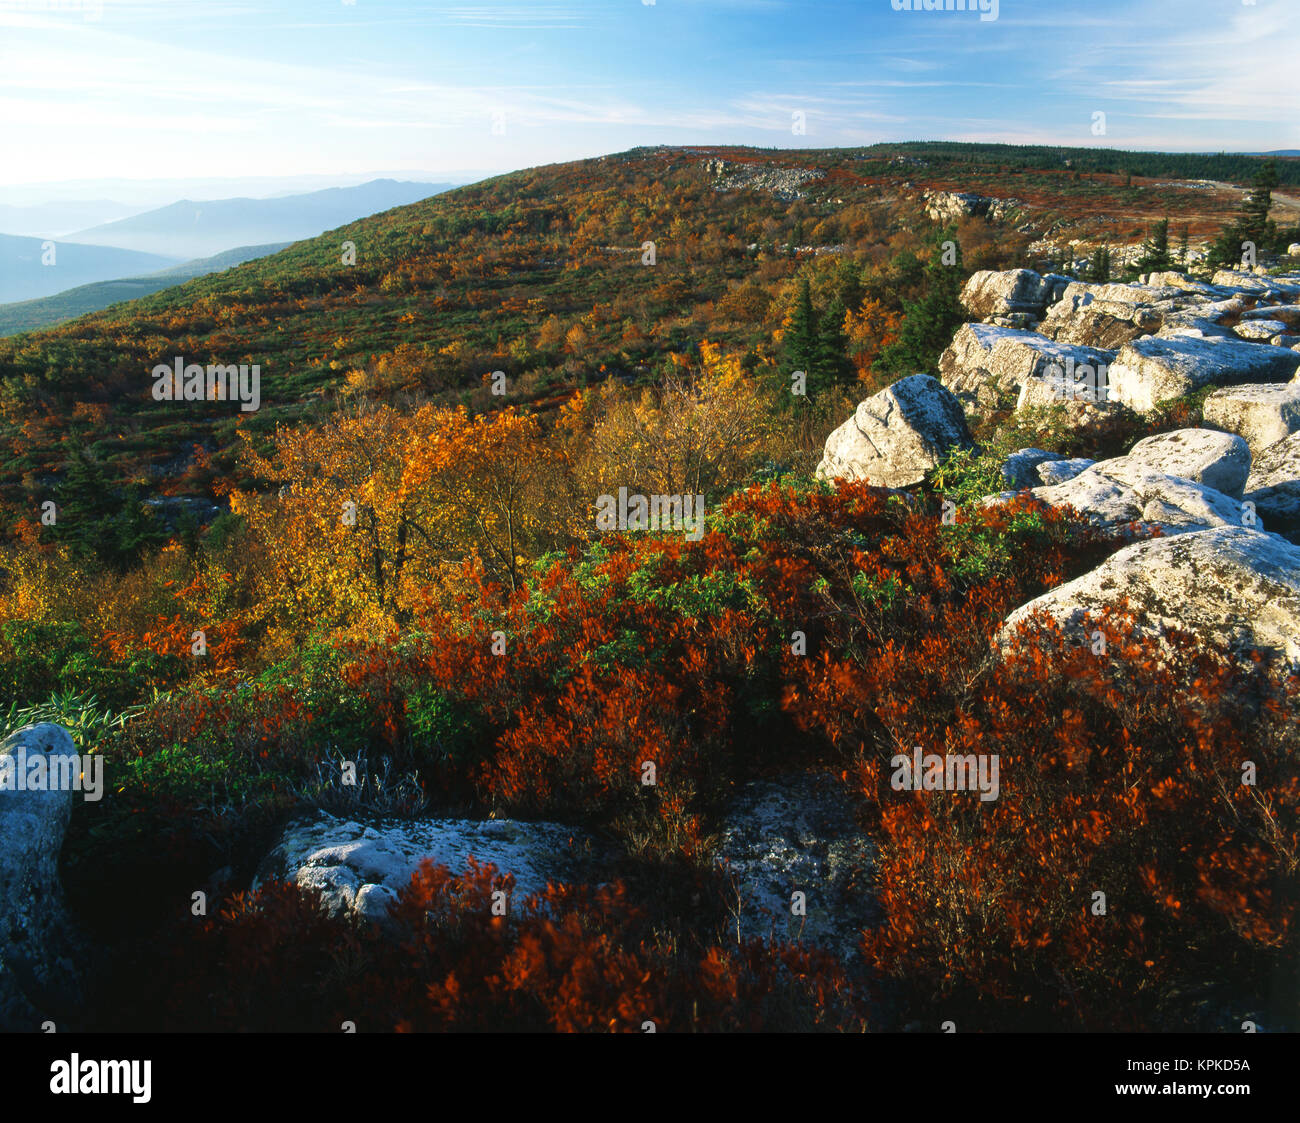 USA, West Virginia, Monongahela National Forest, Bear Rocks in Dolly Sods Wilderness Area (Large format sizes available) - Stock Image